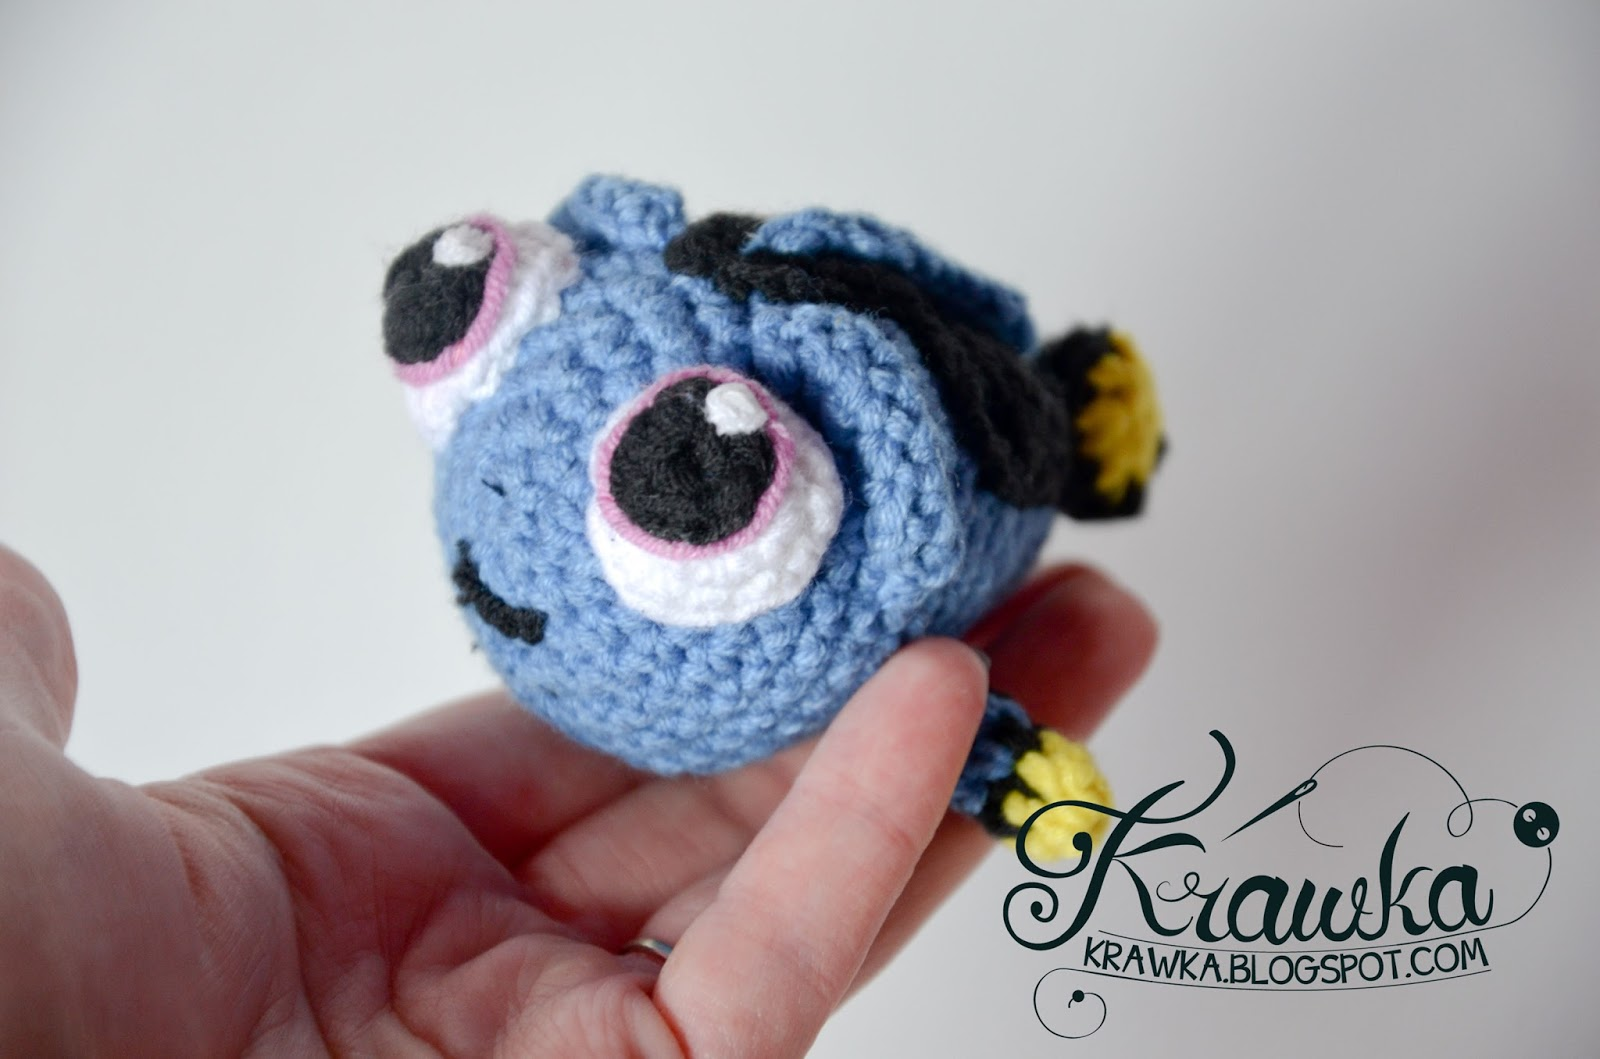 Amigurumi For Free : Turtle amigurumi u free crochet pattern u tillysome patterns